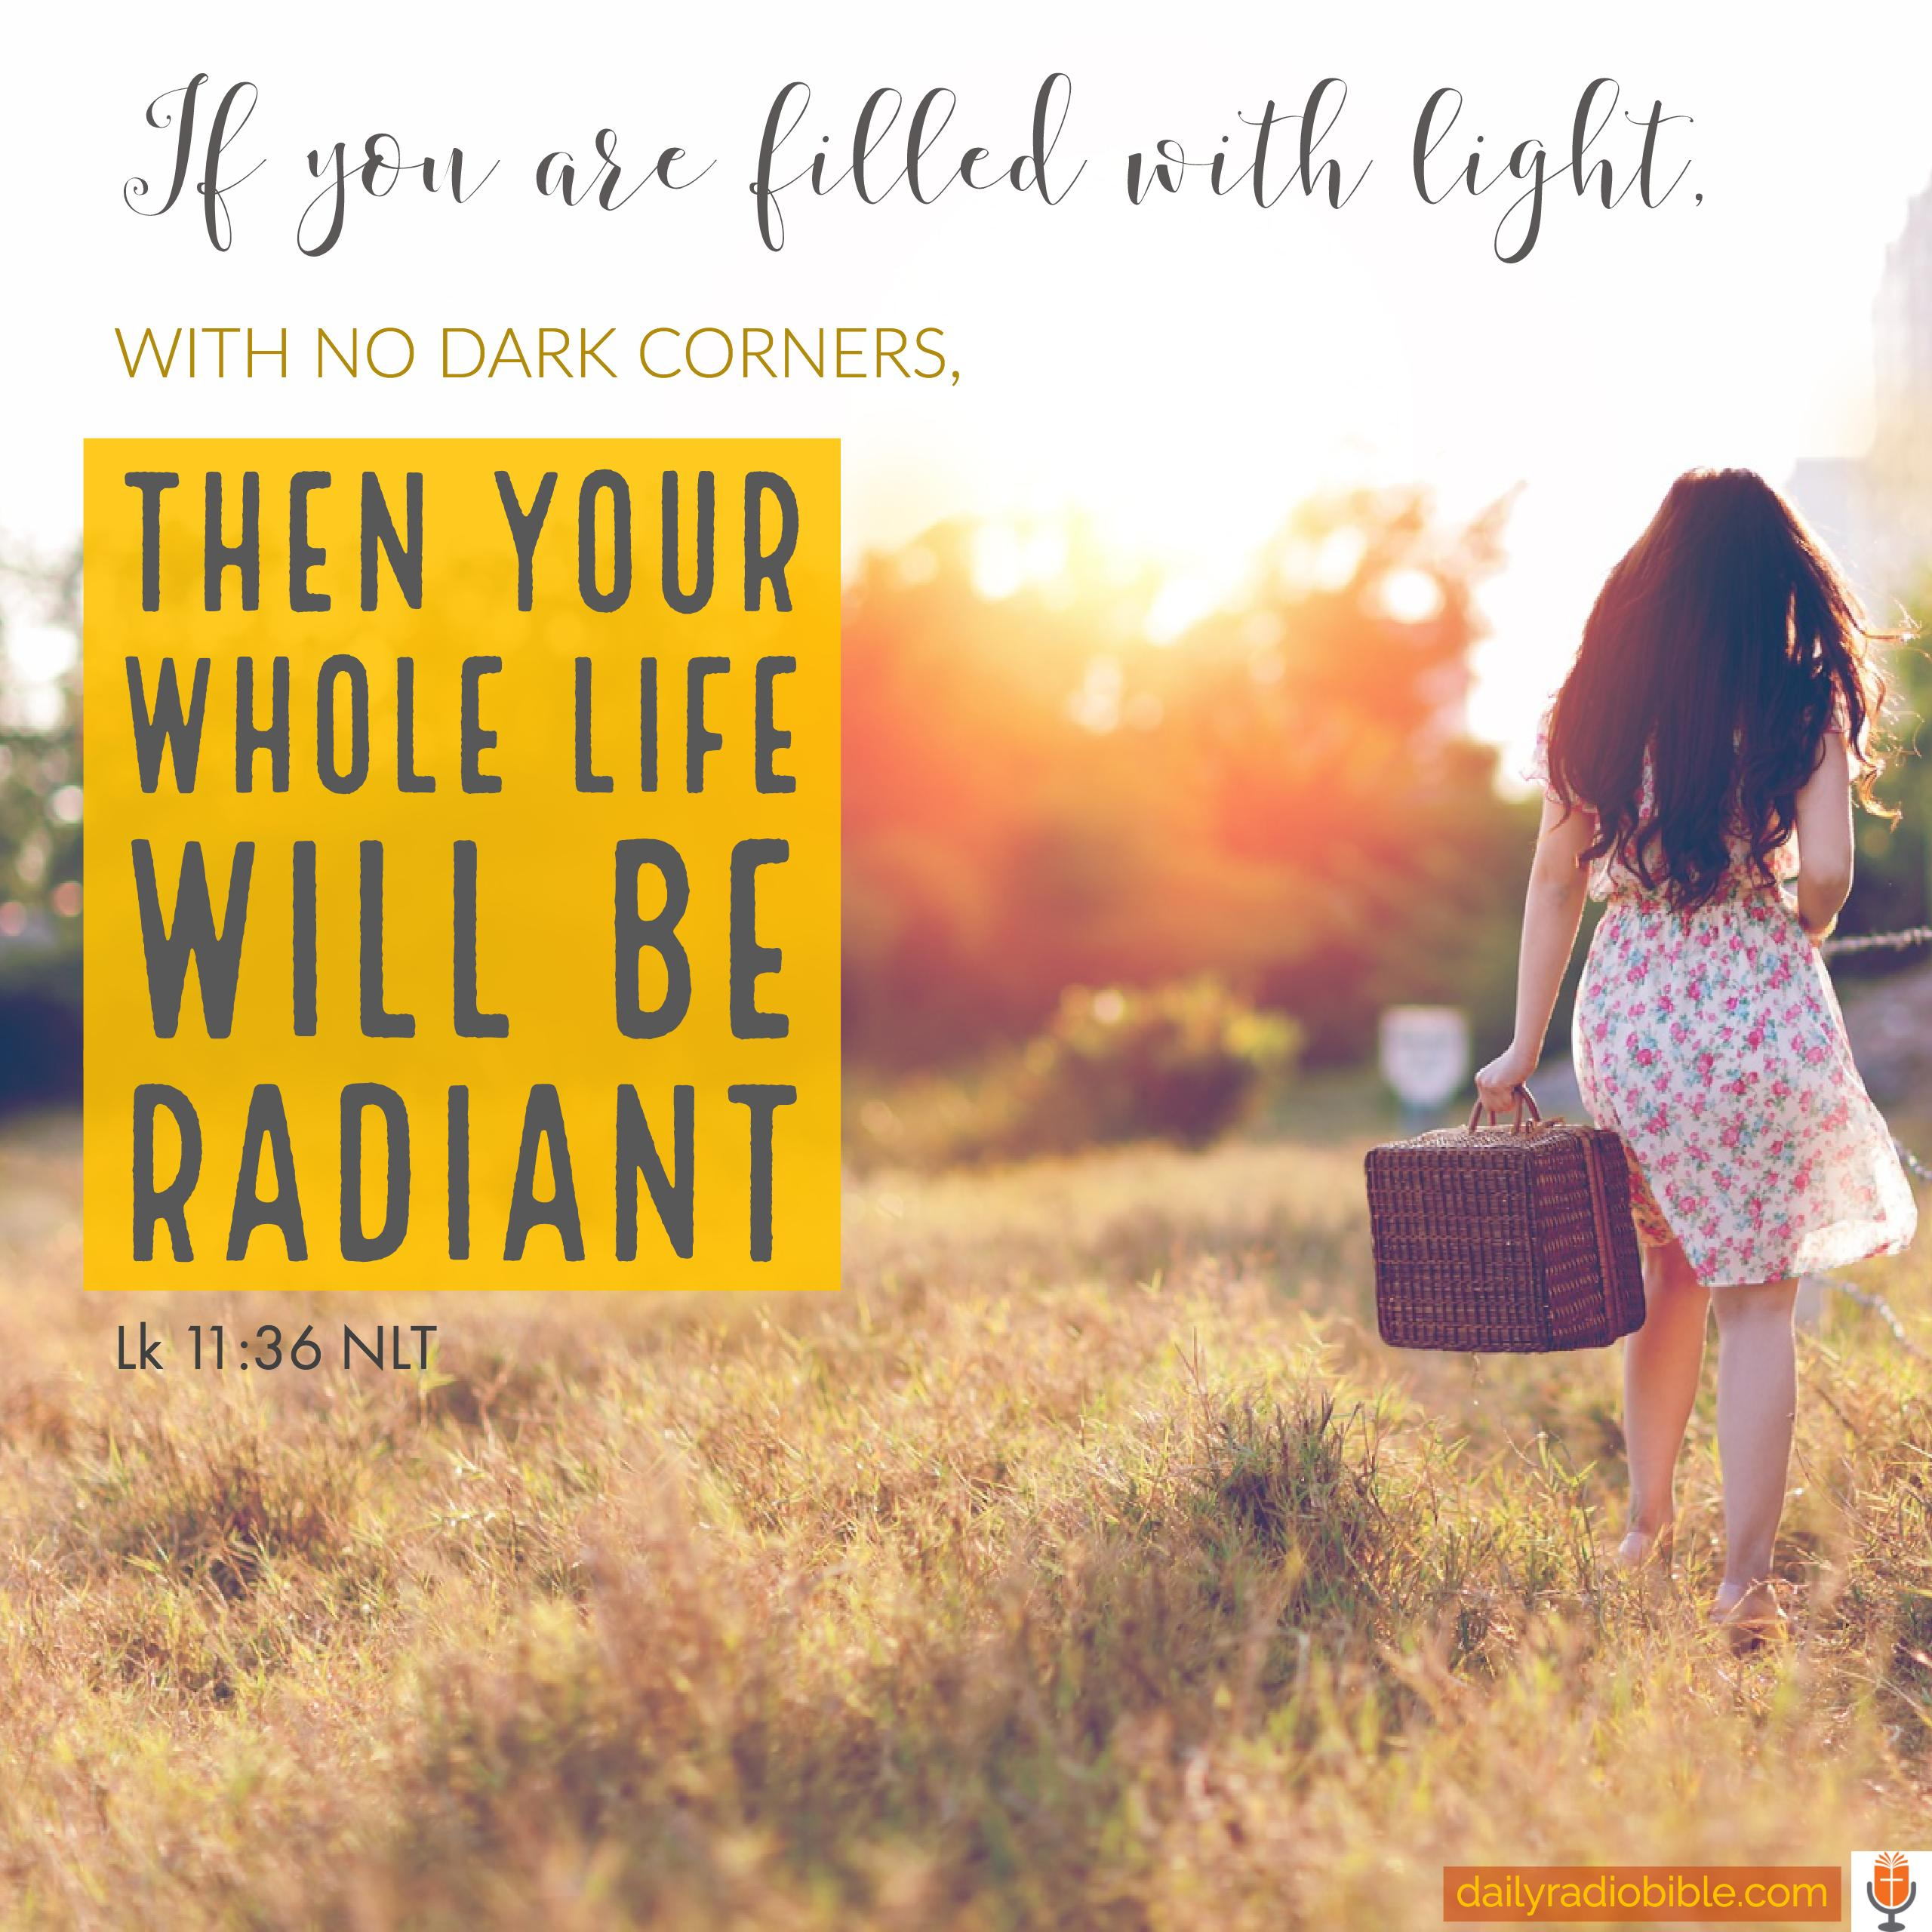 September 28, 2017 Bring on the Floodlights - Daily Radio Bible